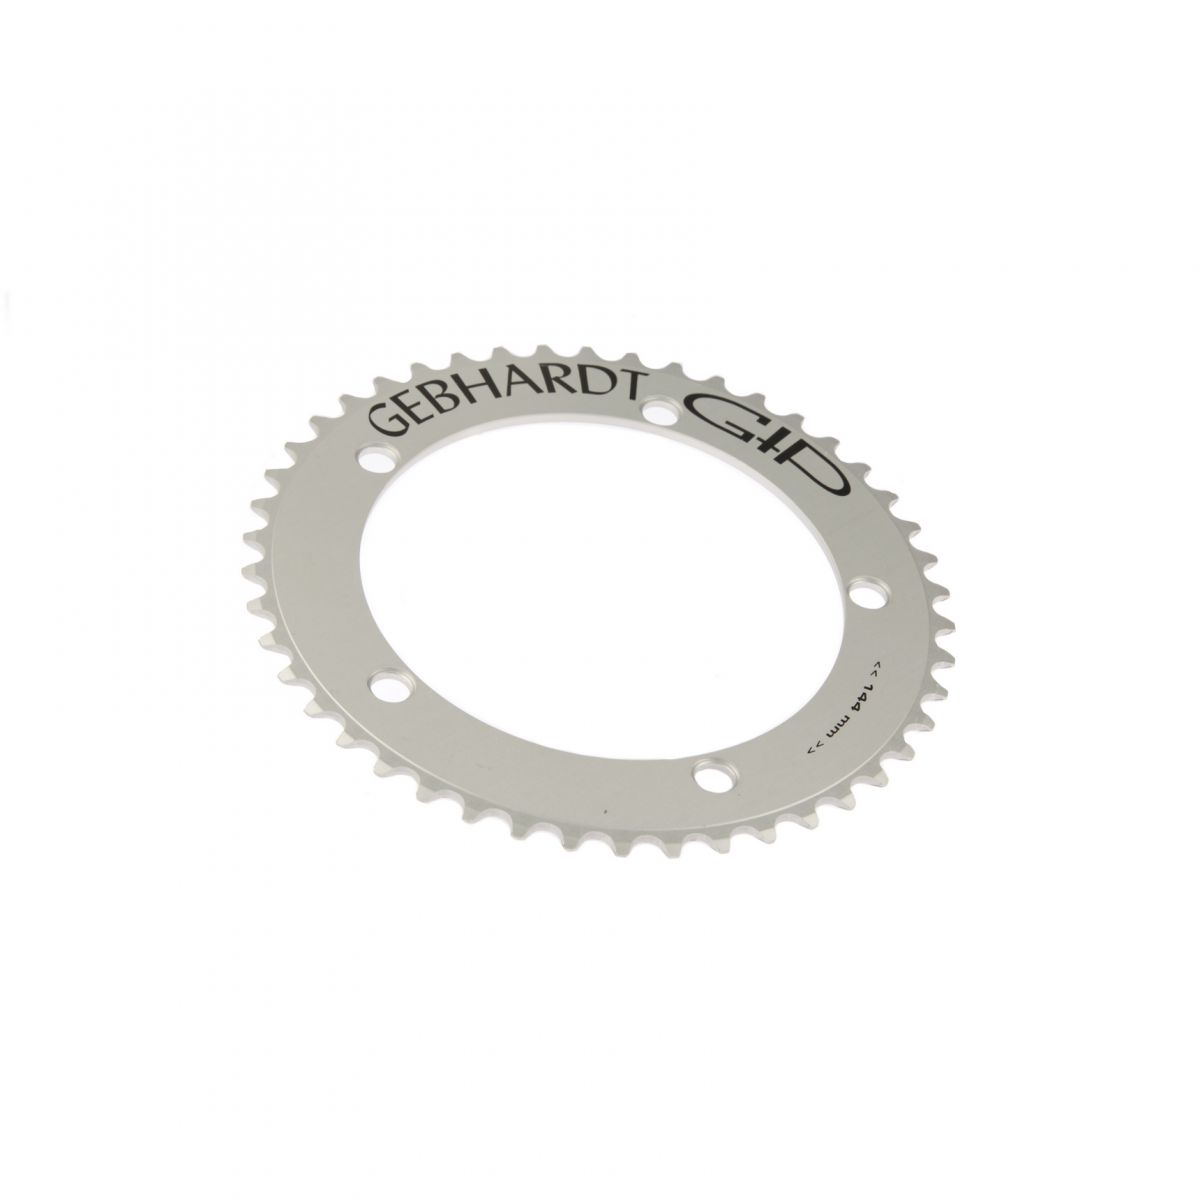 gebhardt chainring track 3mm bcd 144 mm 5hole 51t silver